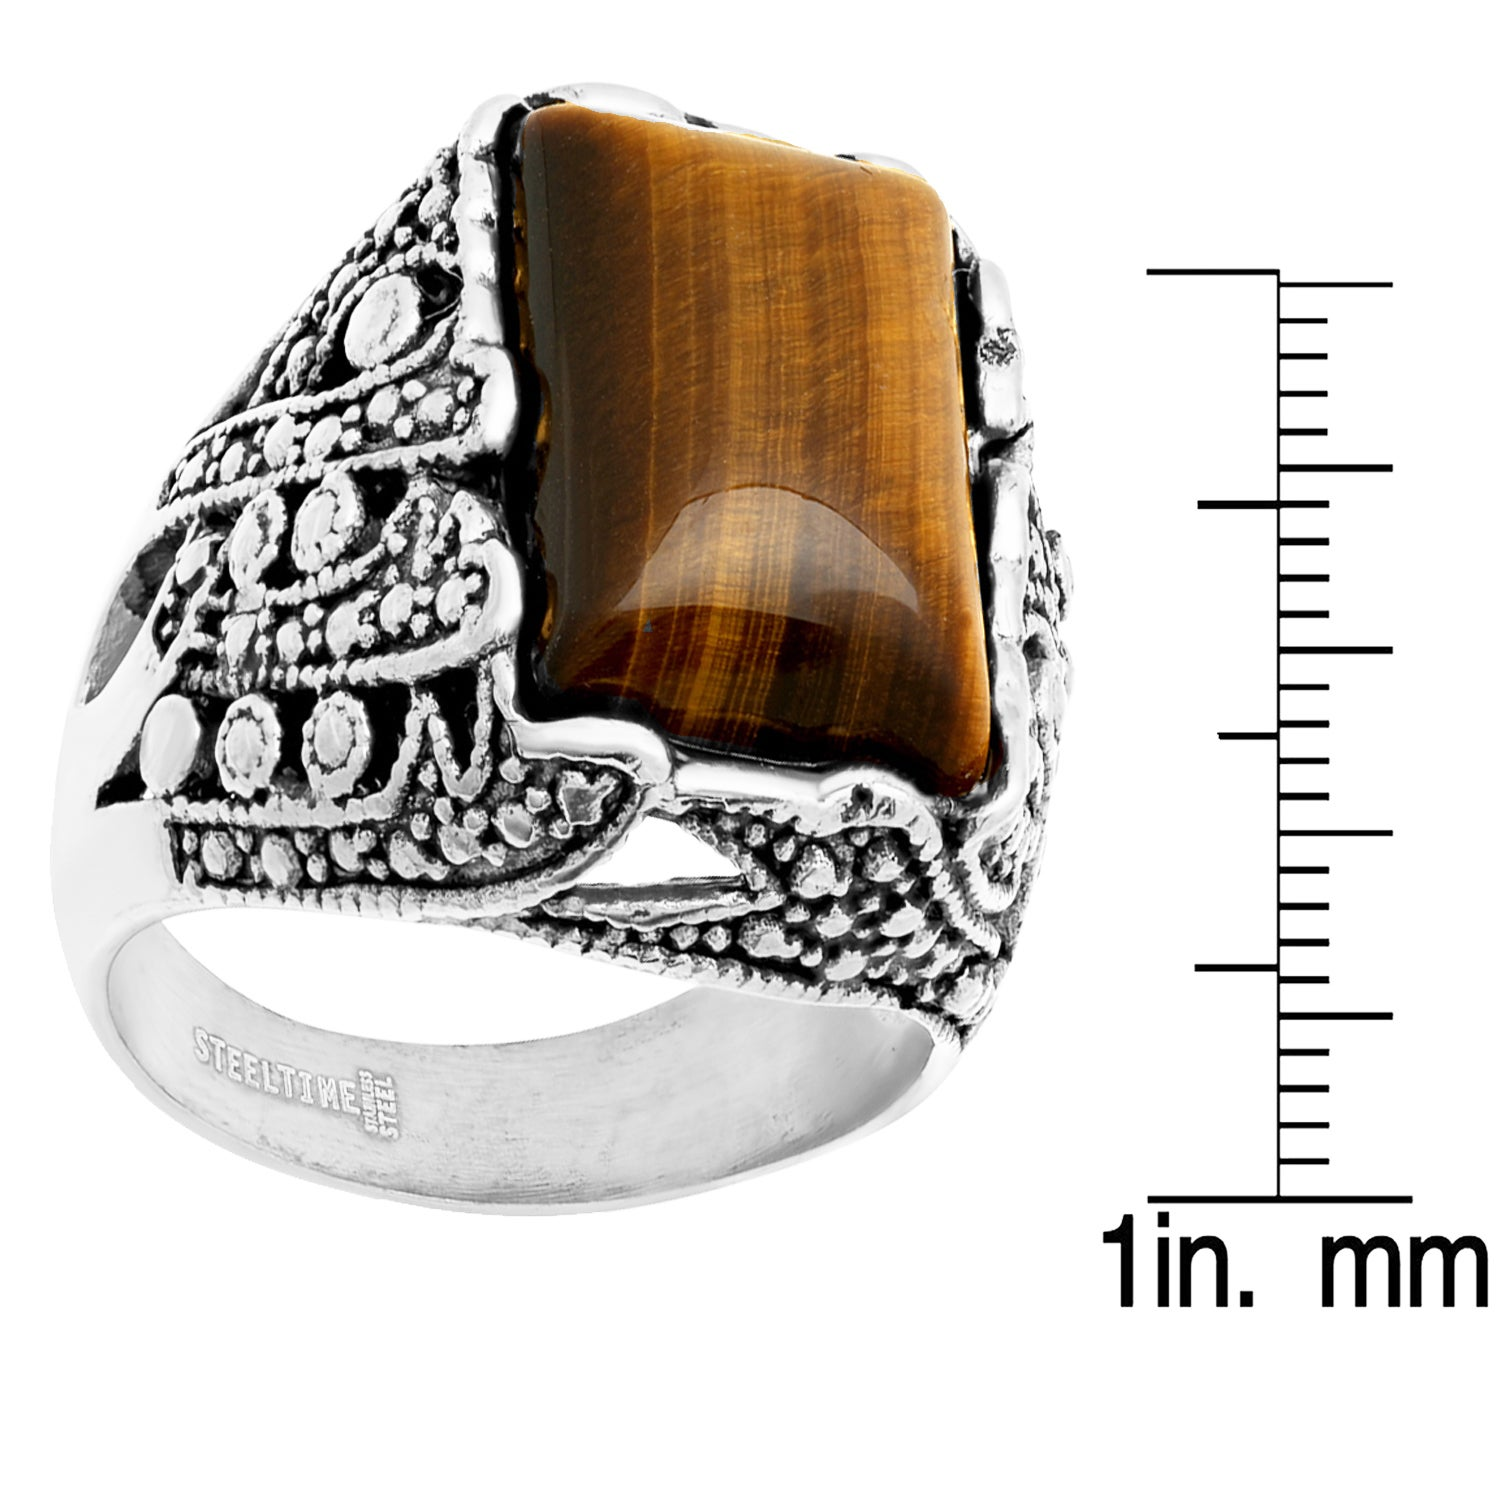 rings shipping gold size engraved tigers vintage white eye ring carved man soldier free l